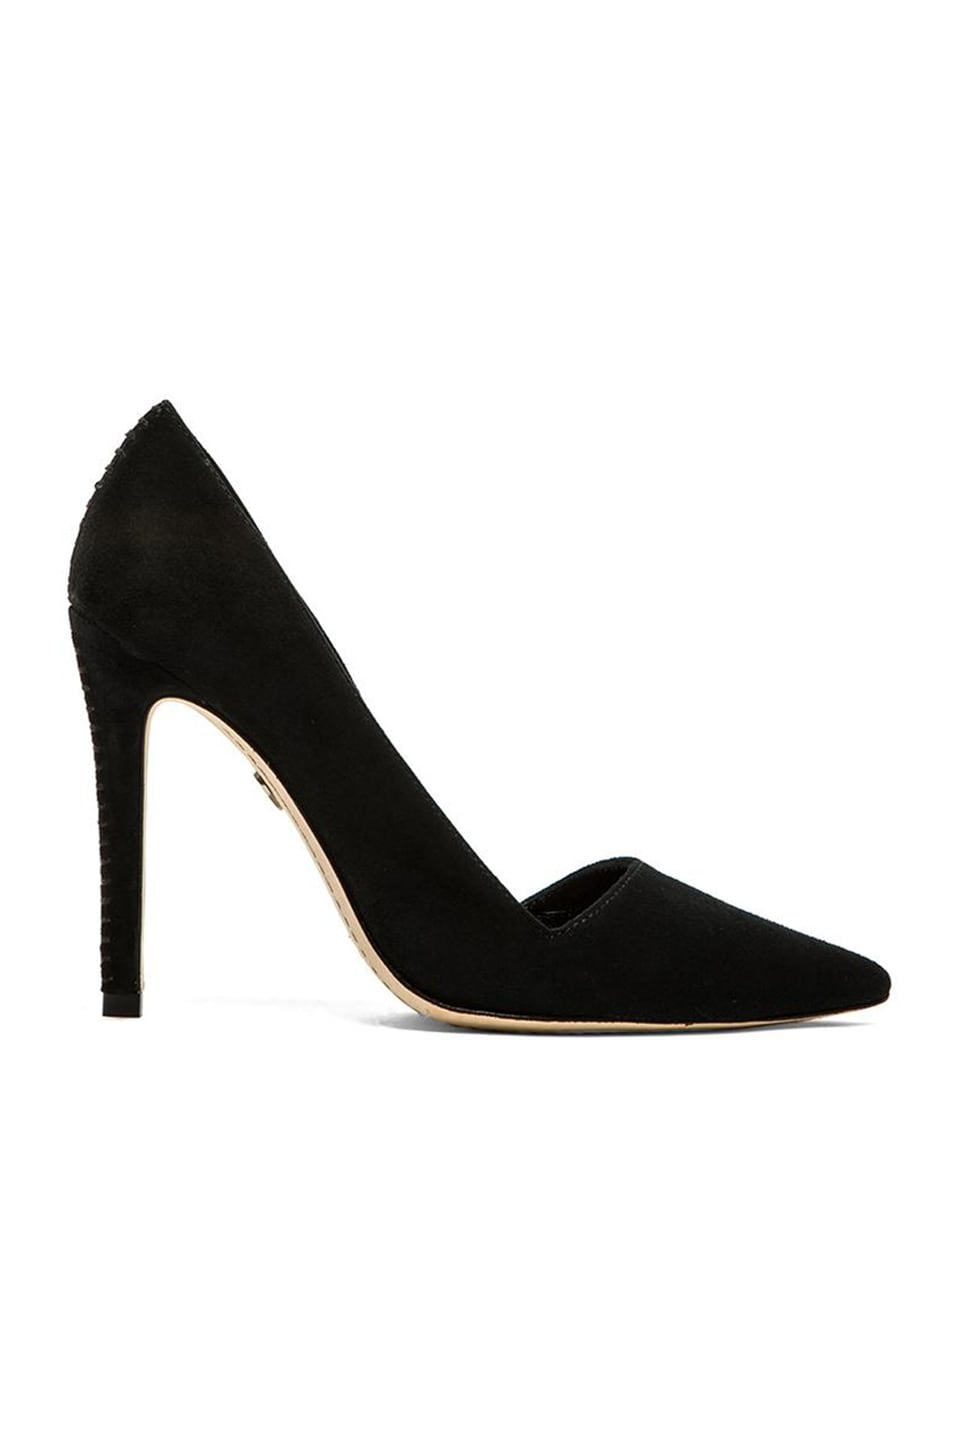 Alice + Olivia Makayla Pumps in Black